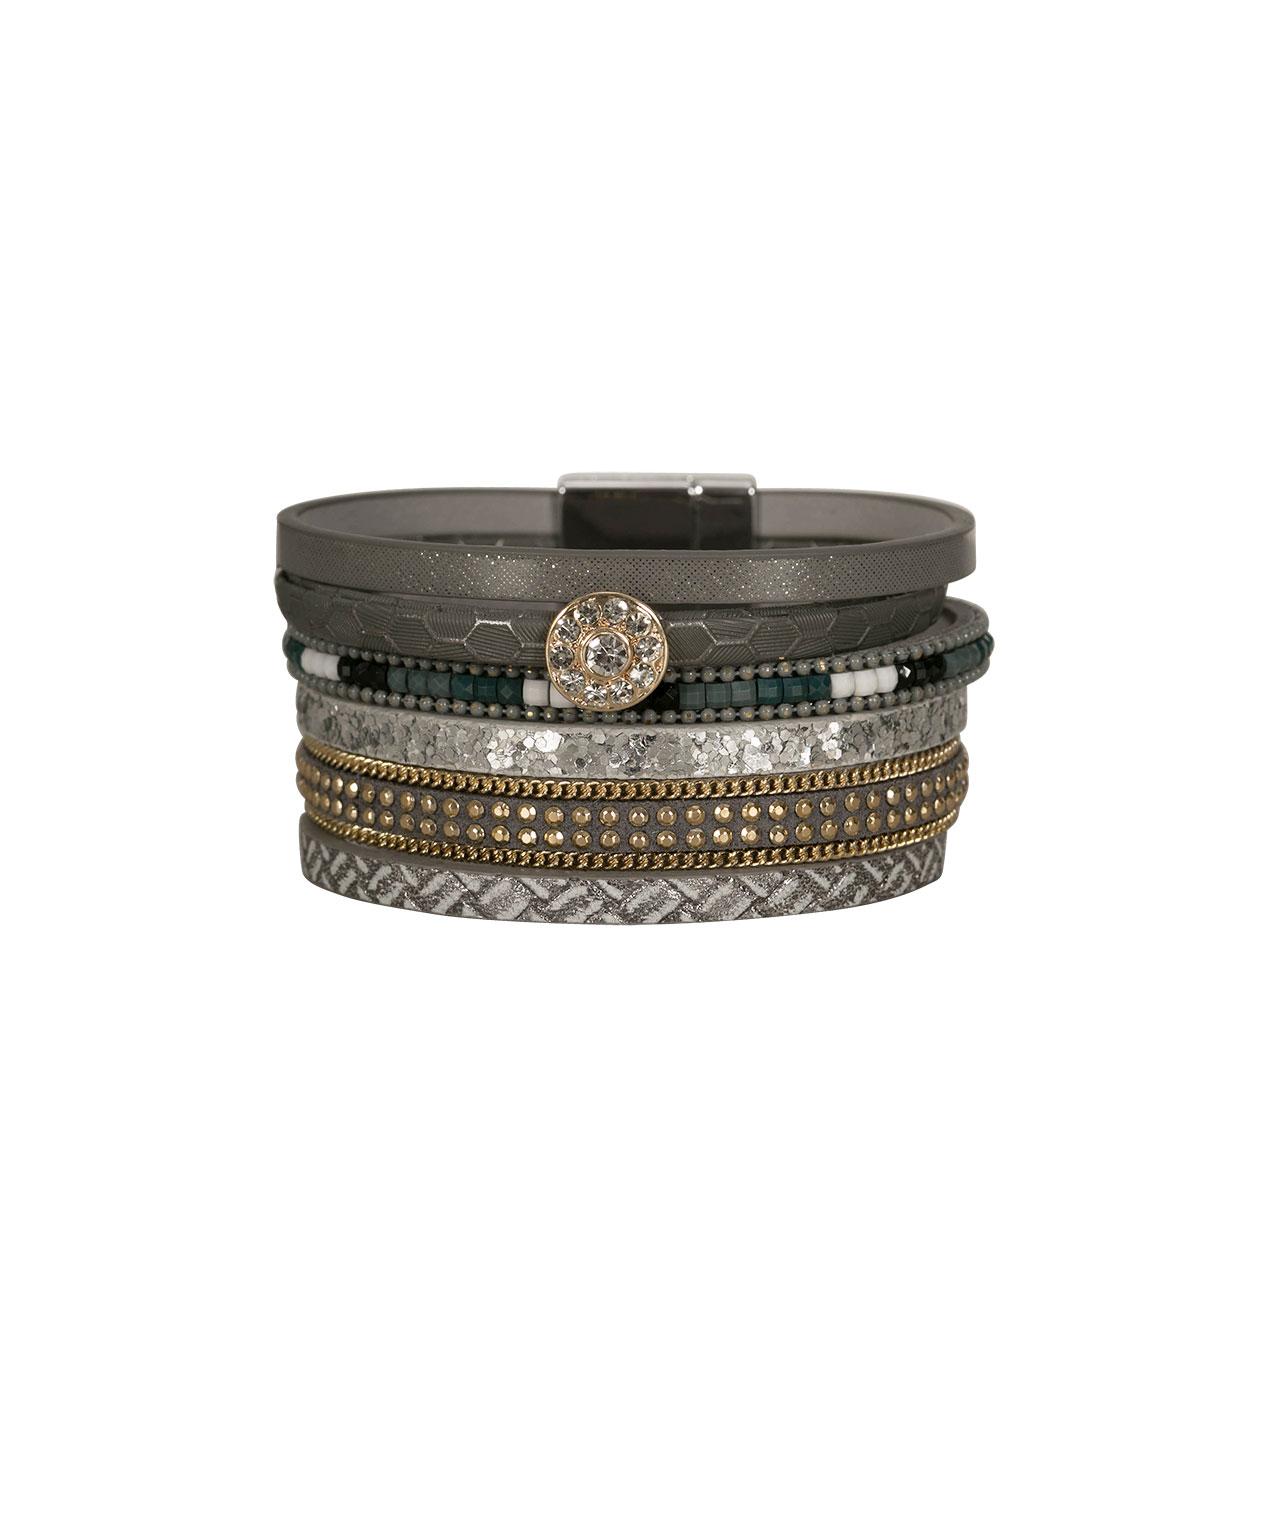 Crystal & Faux Leather Wrap Bracelet, Grey/Teal/Gold/Rhodium, hi-res